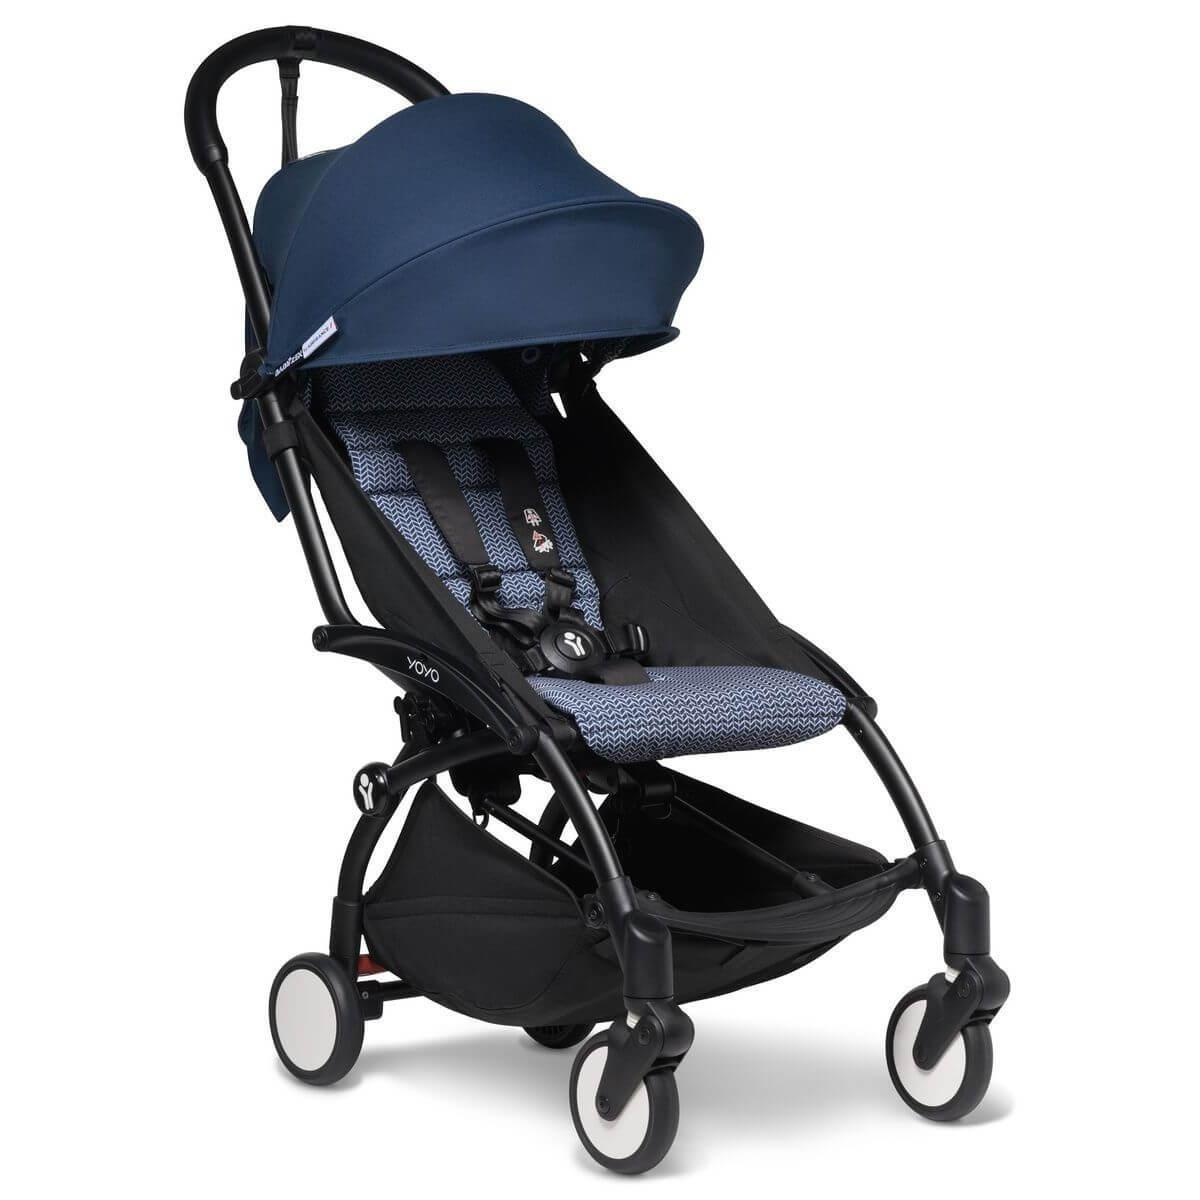 Kinderwagen BABYZEN YOYO²  all-in-one Wanne/Autositz/6+ schwartz-Air France